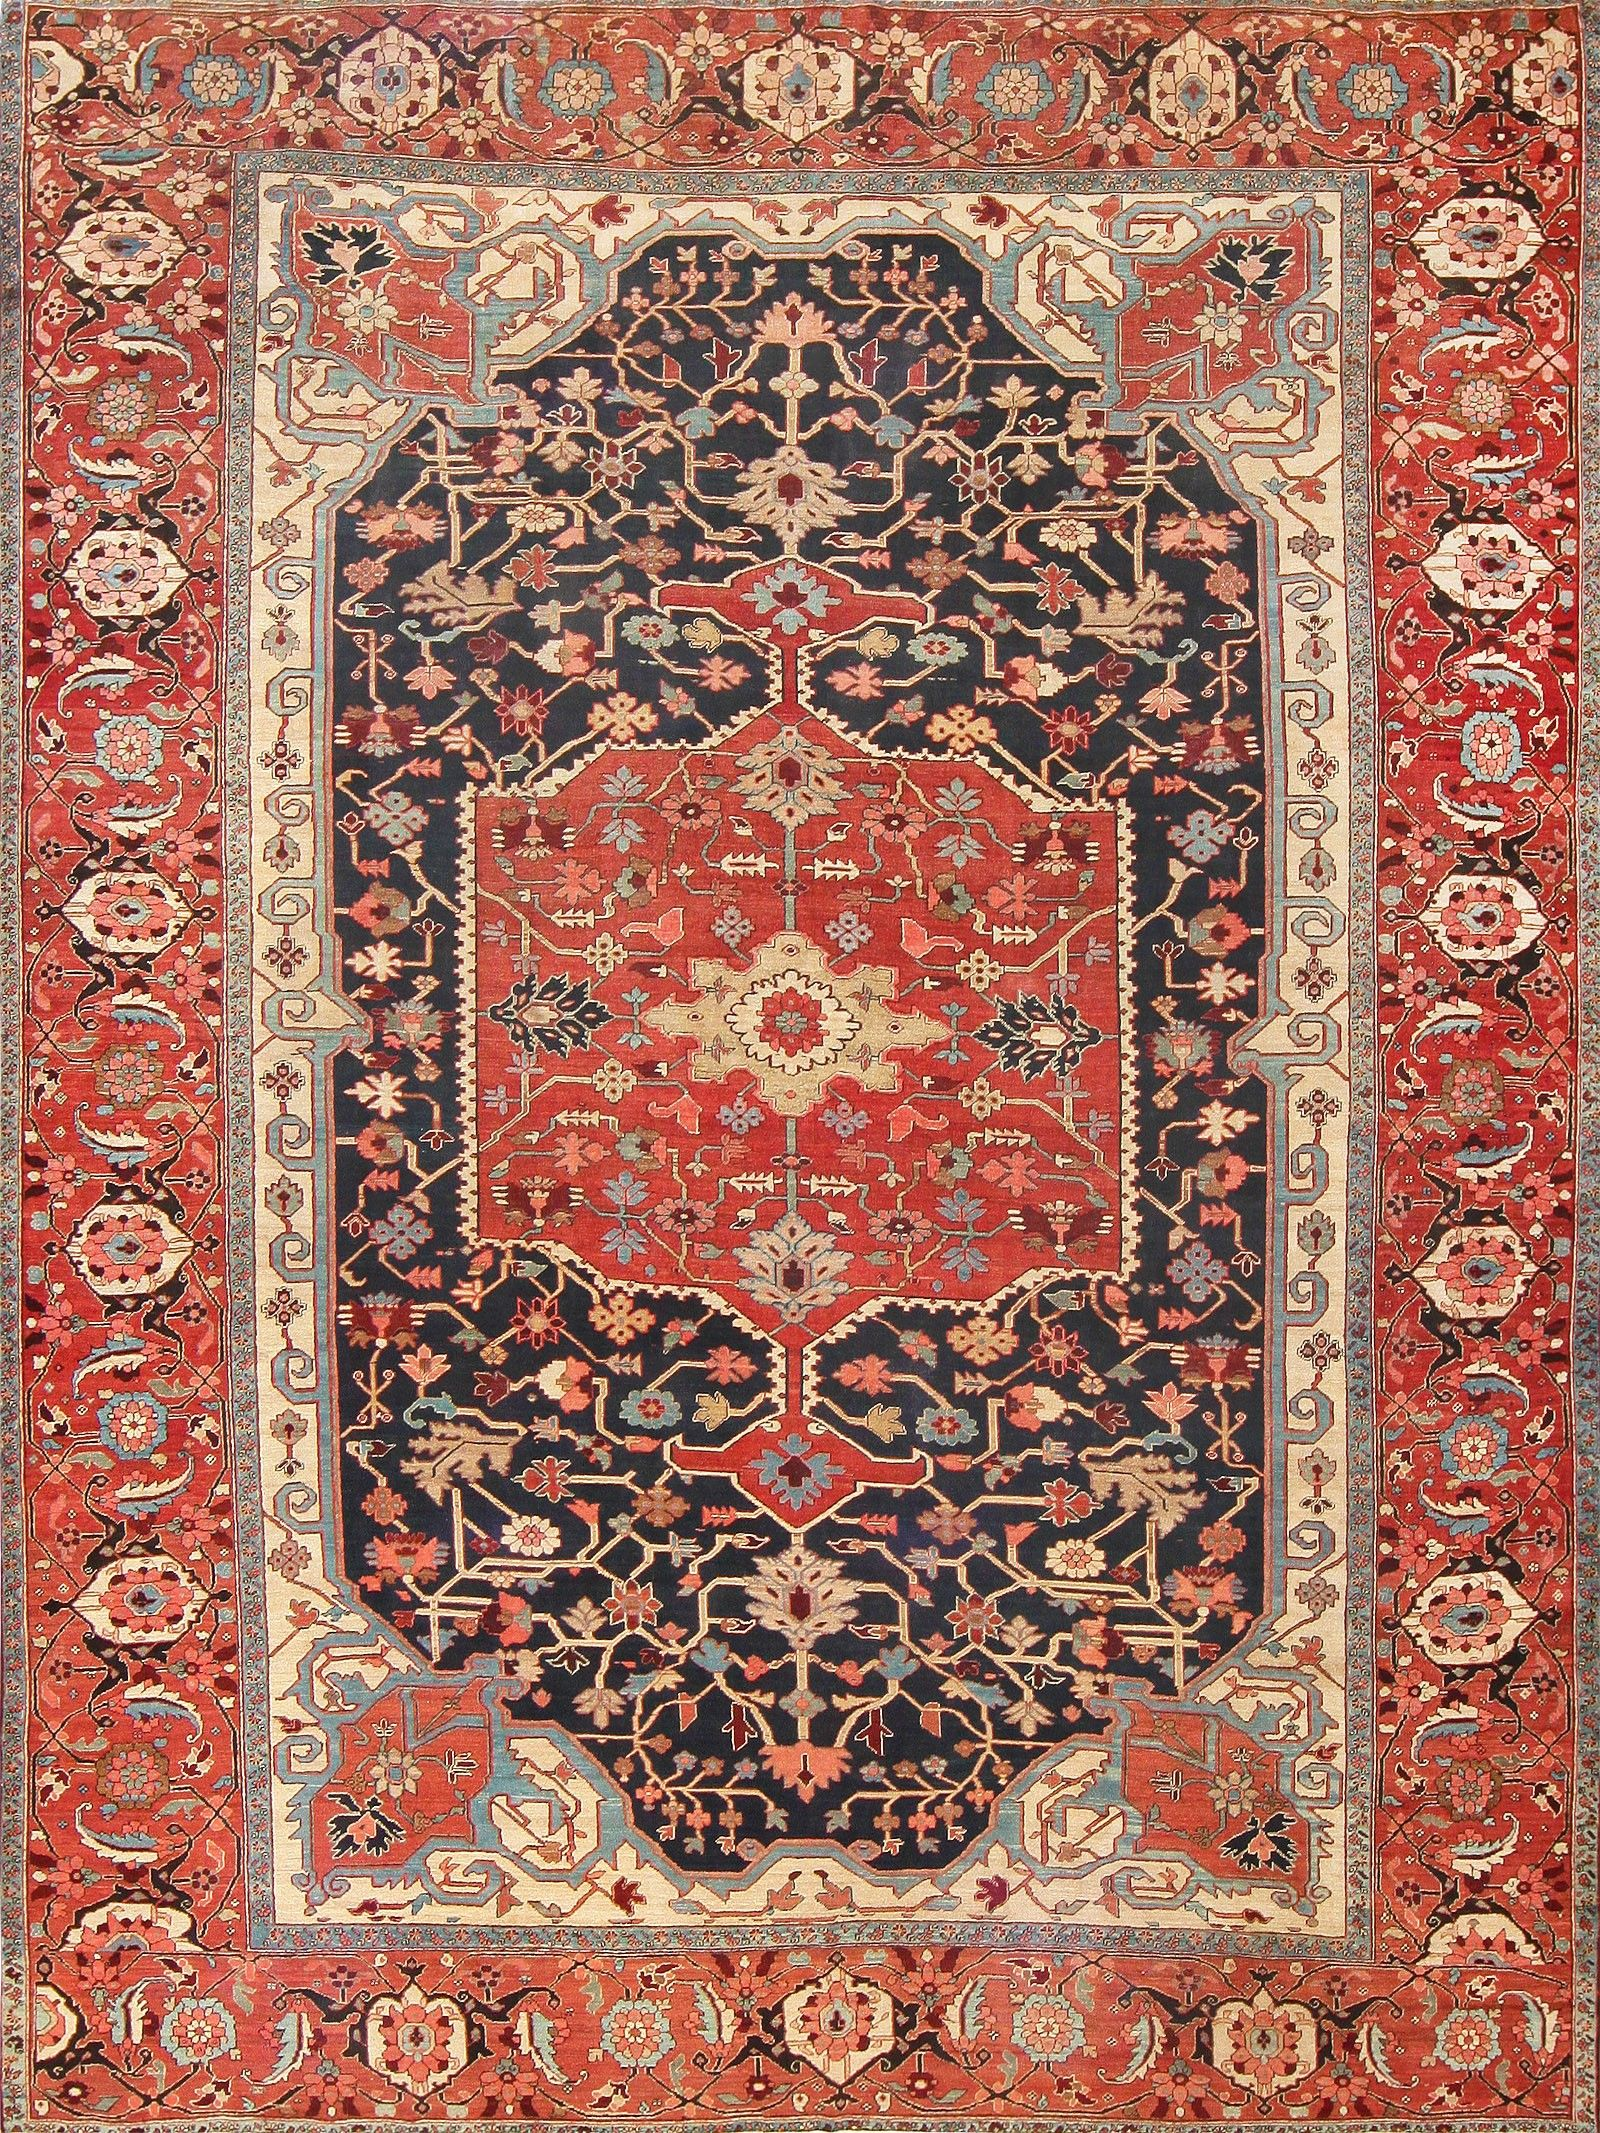 Antique Heriz Serapi Rug Provenance: Dustin Hoffman NYC 47612 Detail/Large View - By Nazmiyal